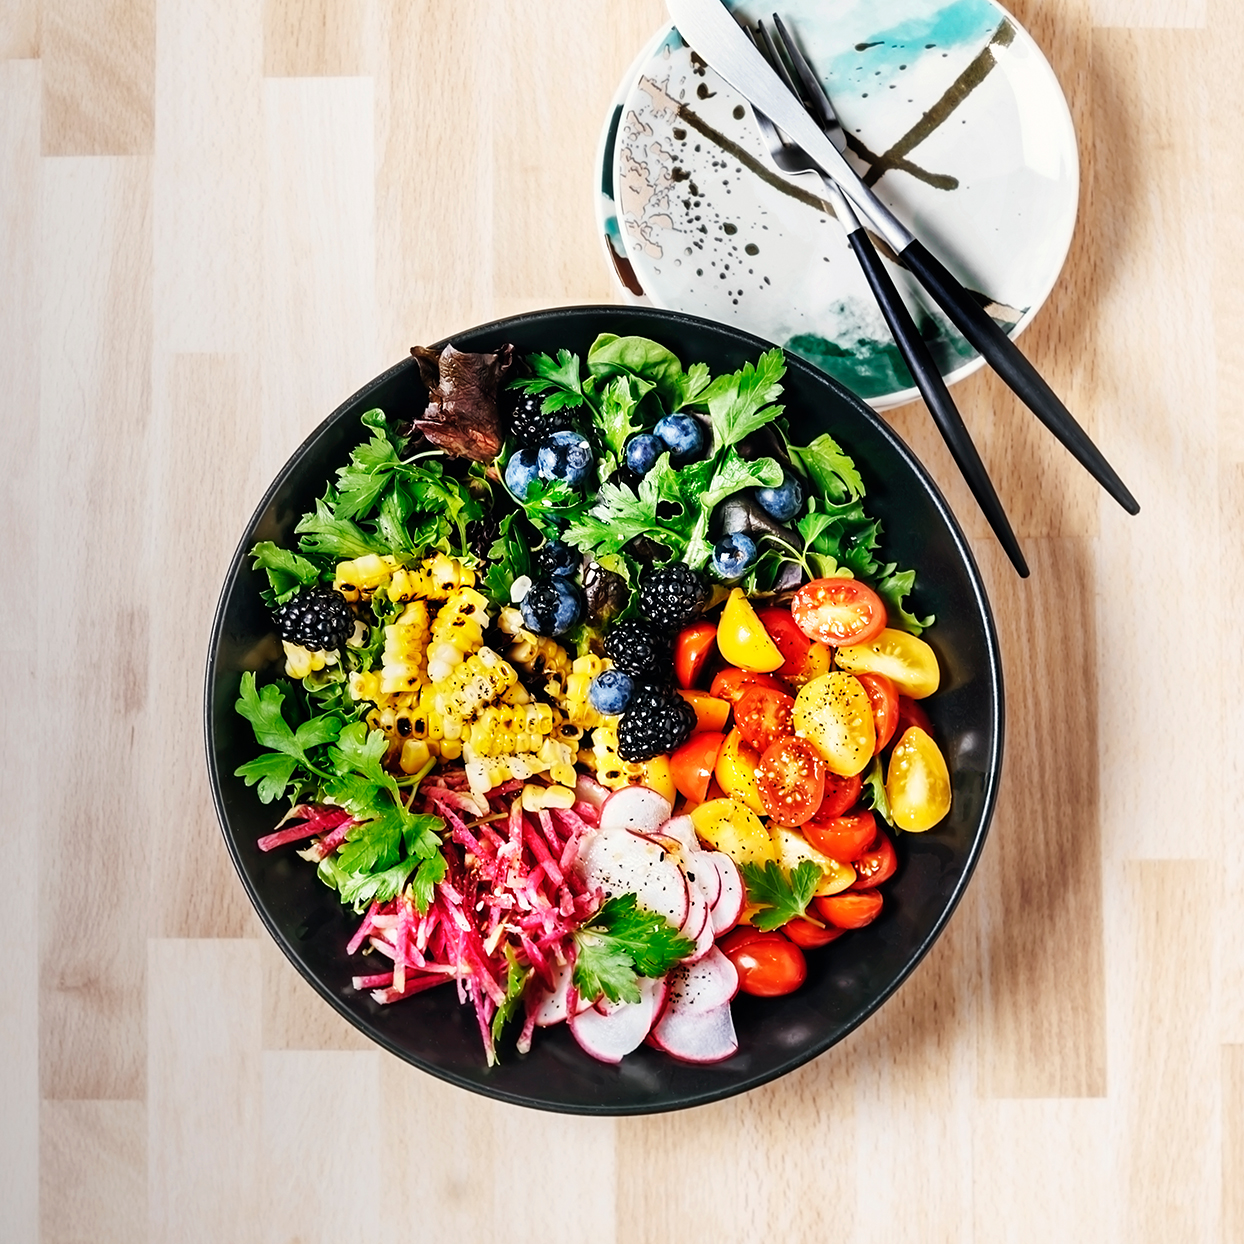 Bowl of fresh salad on wooden background